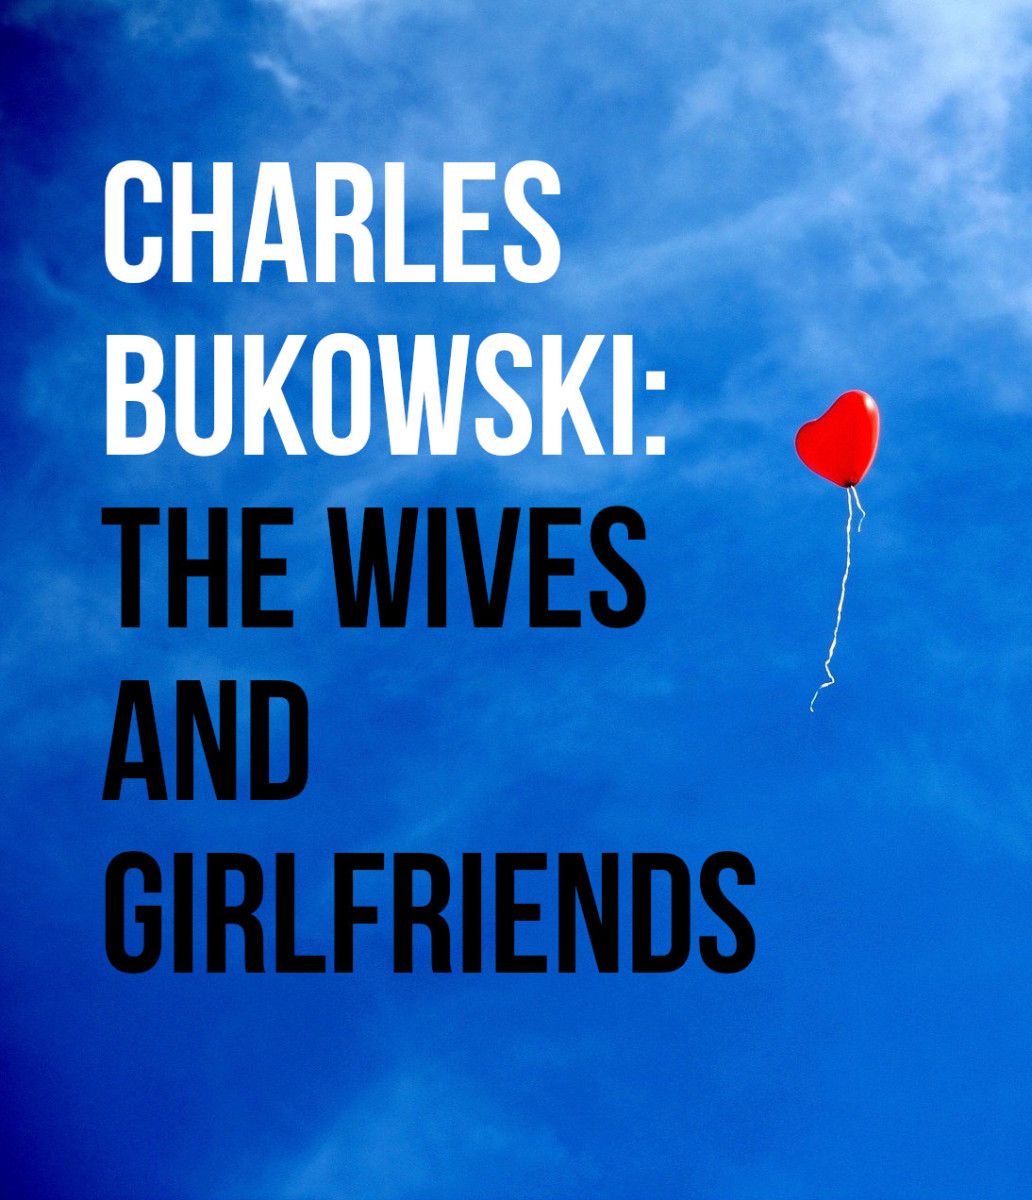 The love life of Charles Bukowski was erratic: sometimes intense, sometimes casual, and often non-existent. This article looks at the wives and girlfriends who shared his life.